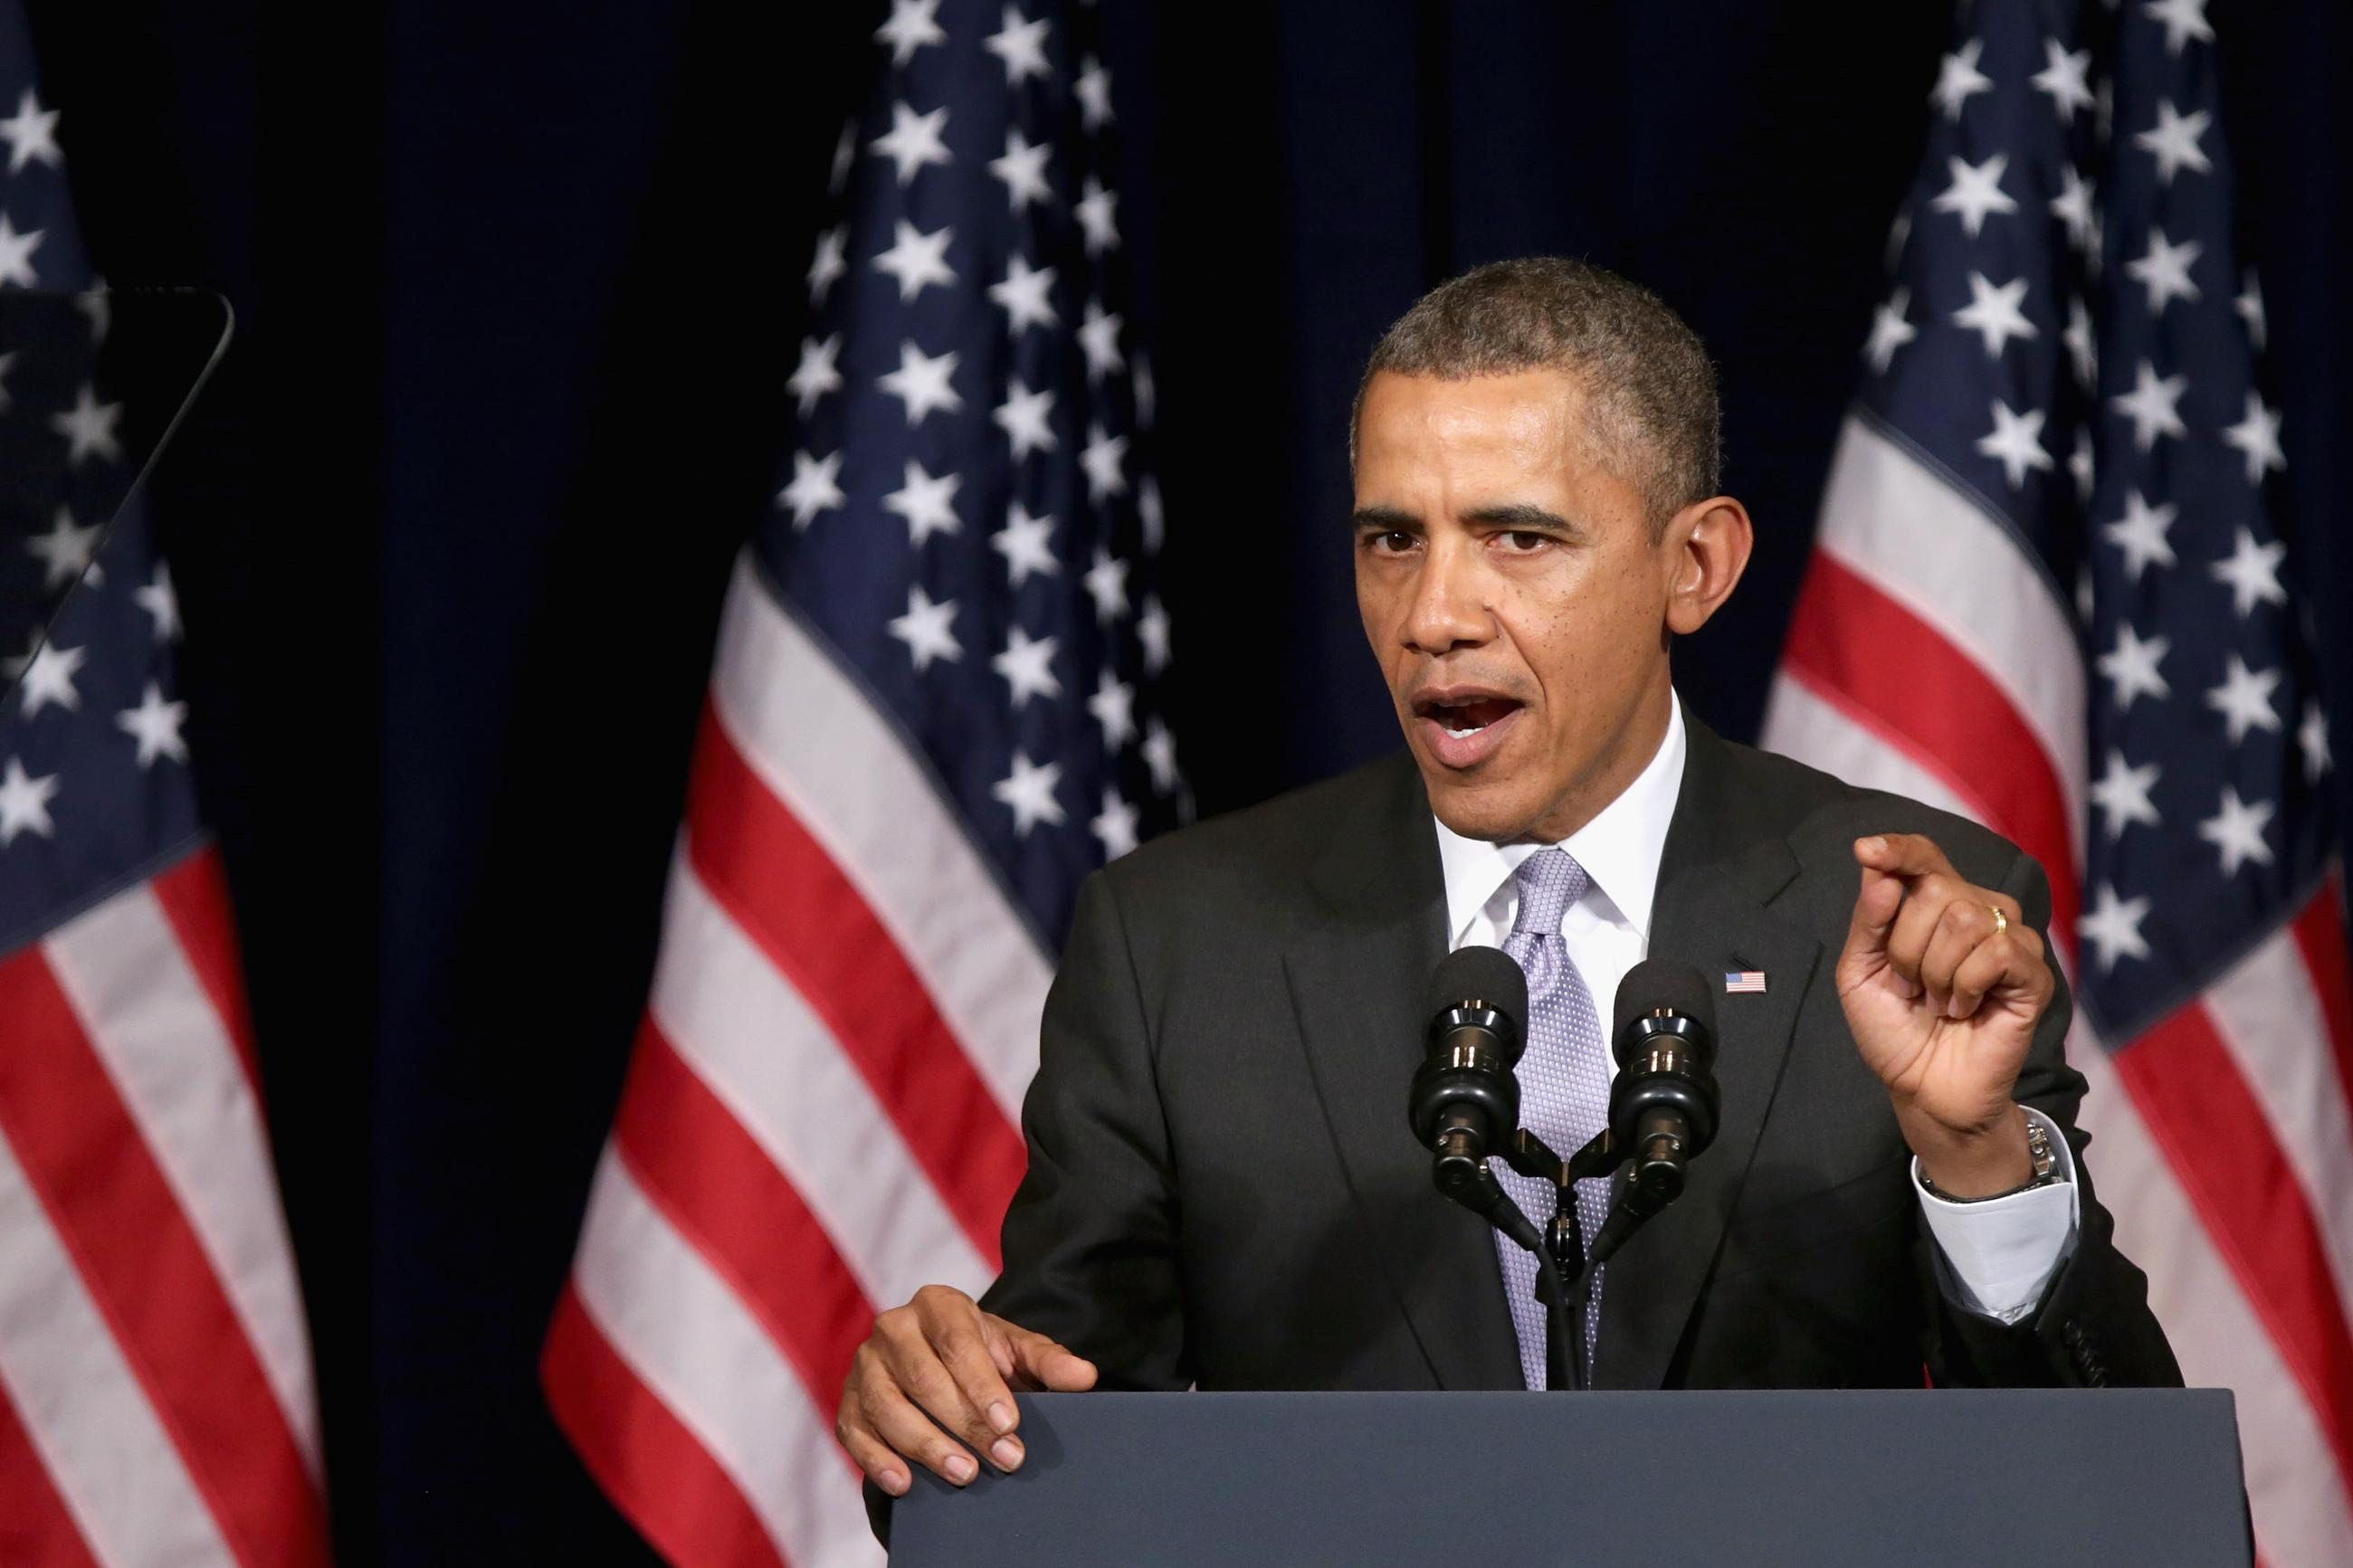 White House: Sequester No Longer Applies to Part of Obamacare